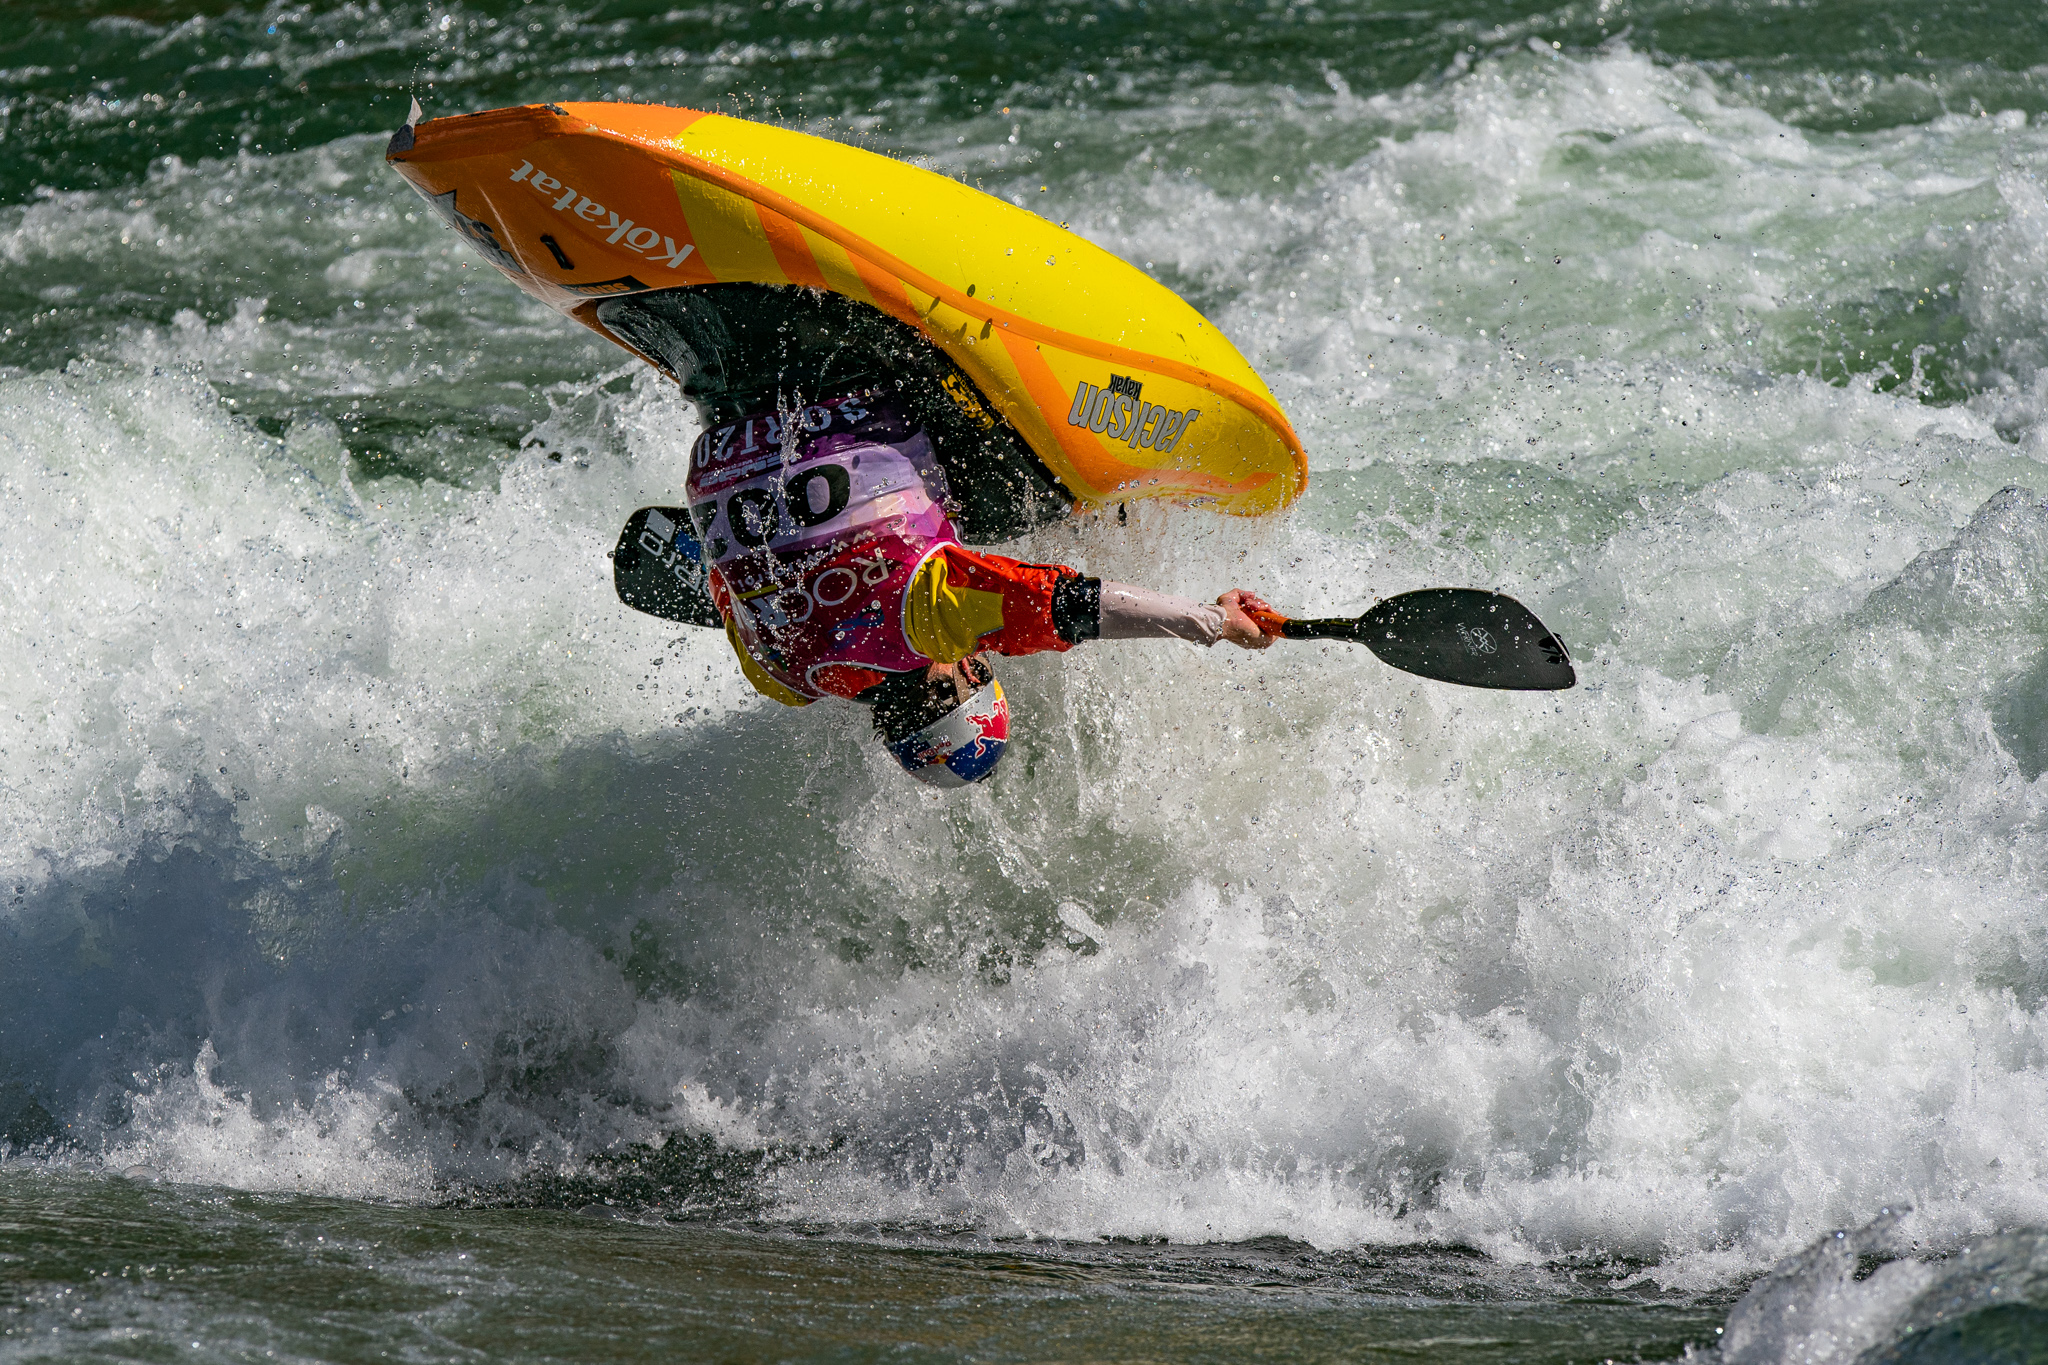 Dane Jackson (USA) flies high as he works to regain his title of world champion. ©Peter Holcombe:kayaksession.com